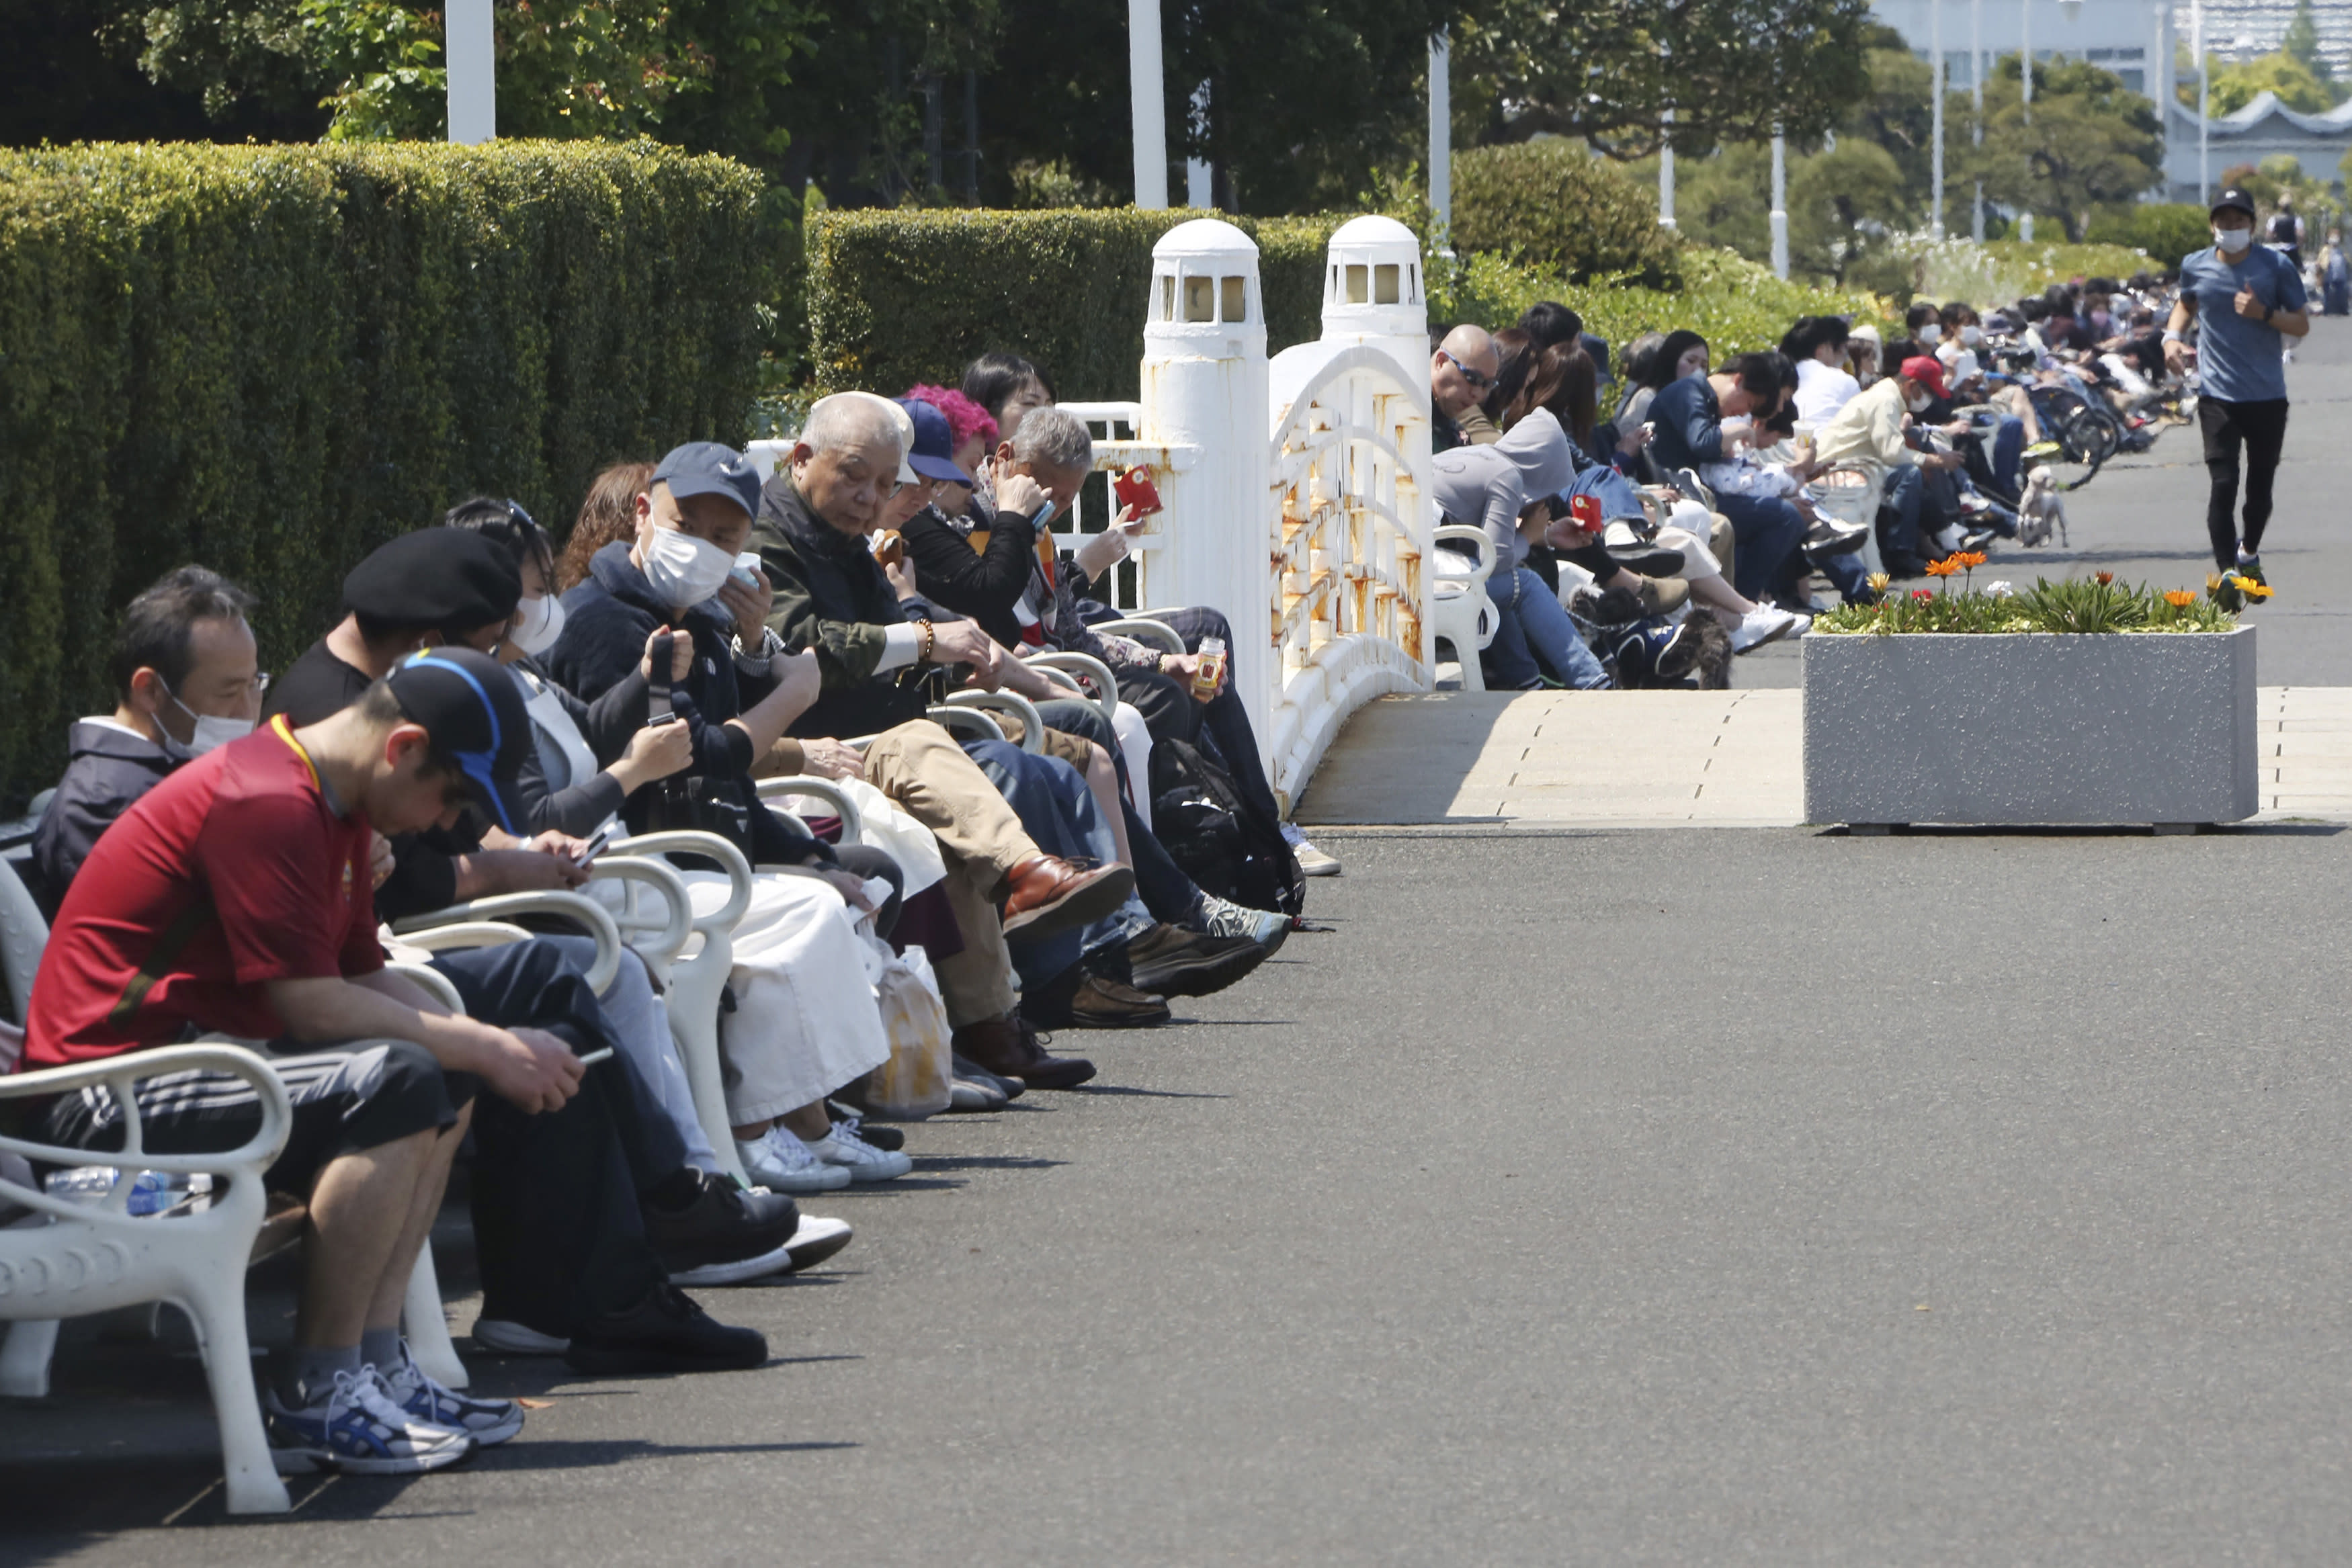 People sit on the bench at a park in Yokohama, near Tokyo, on a national holiday, Wednesday, April 29, 2020. (AP Photo/Koji Sasahara)